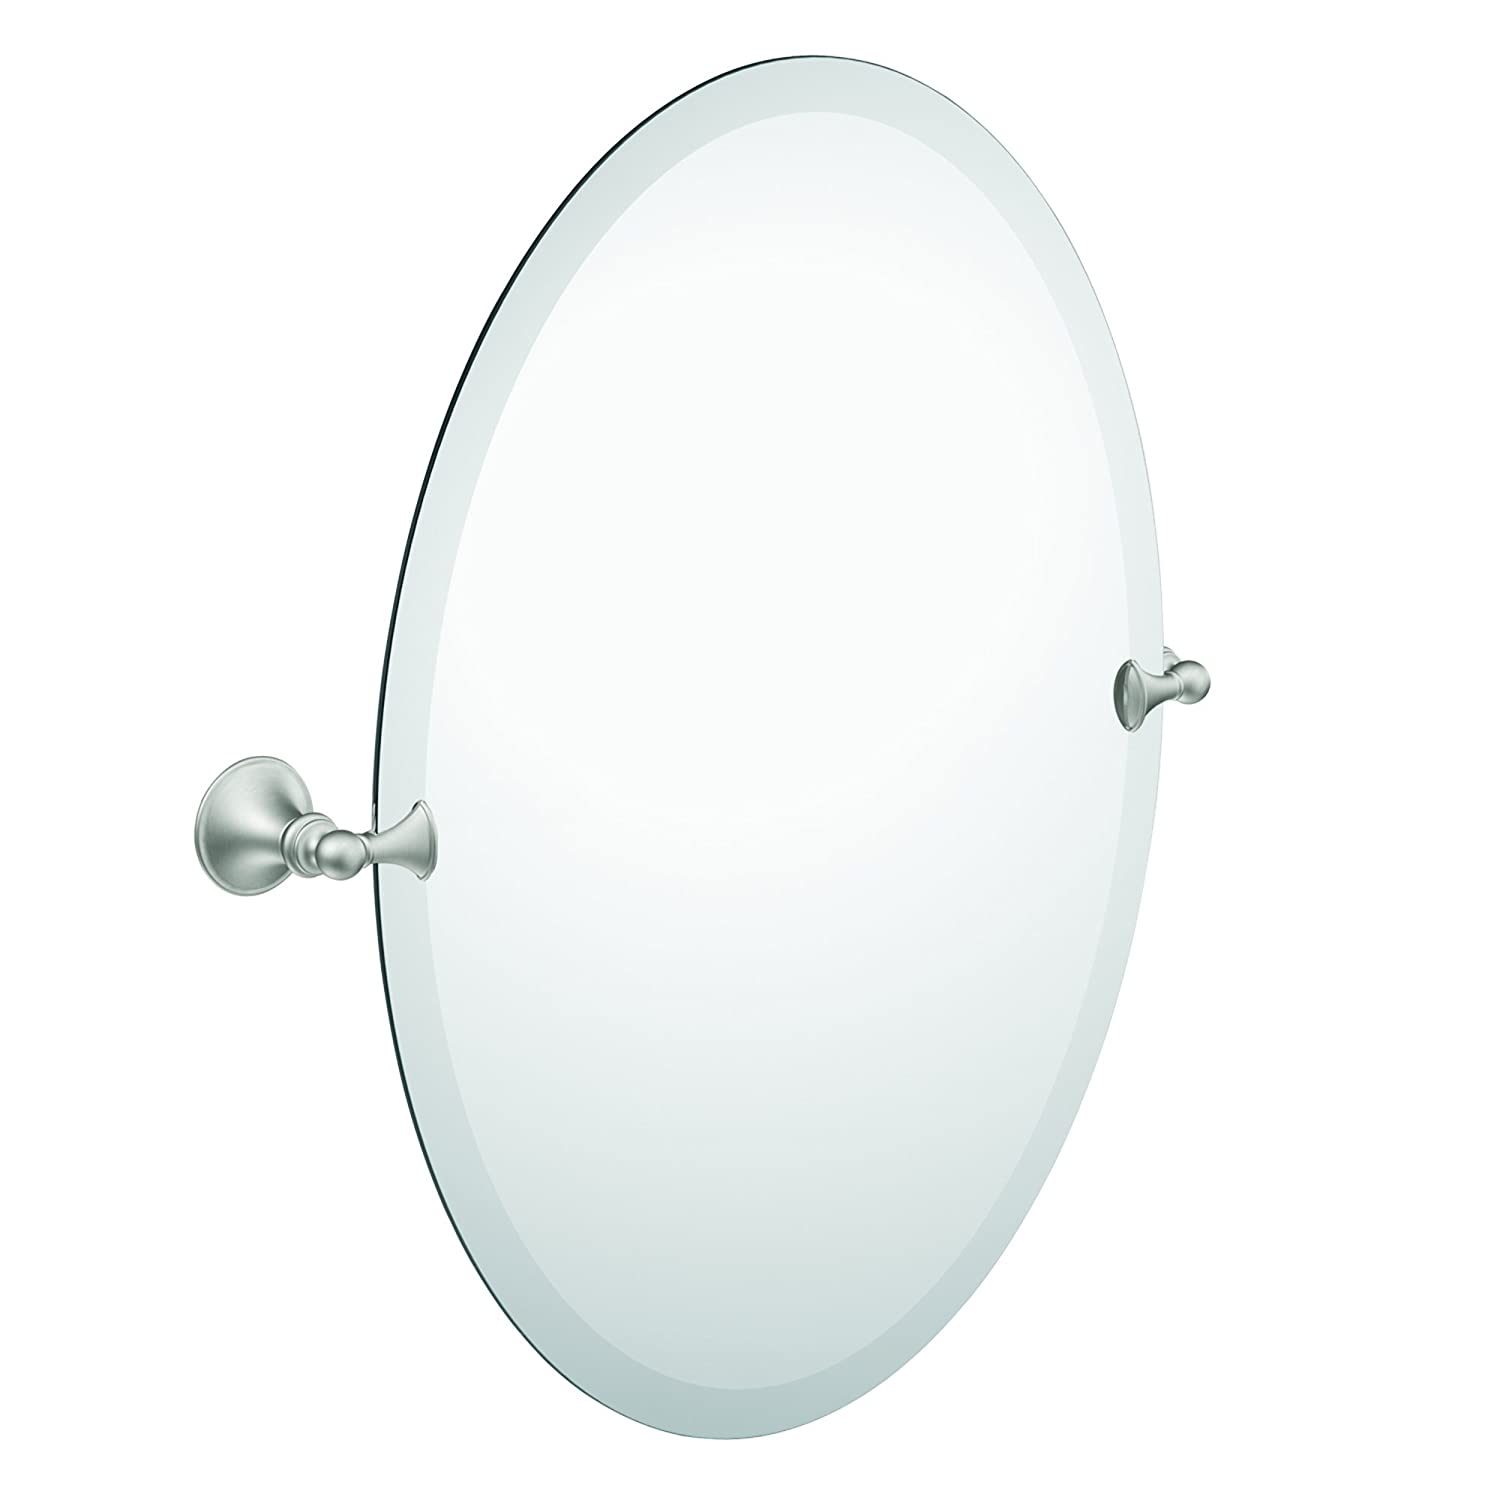 Amazon.com: Moen DN2692BN Glenshire Bathroom Oval Tilting Mirror ...